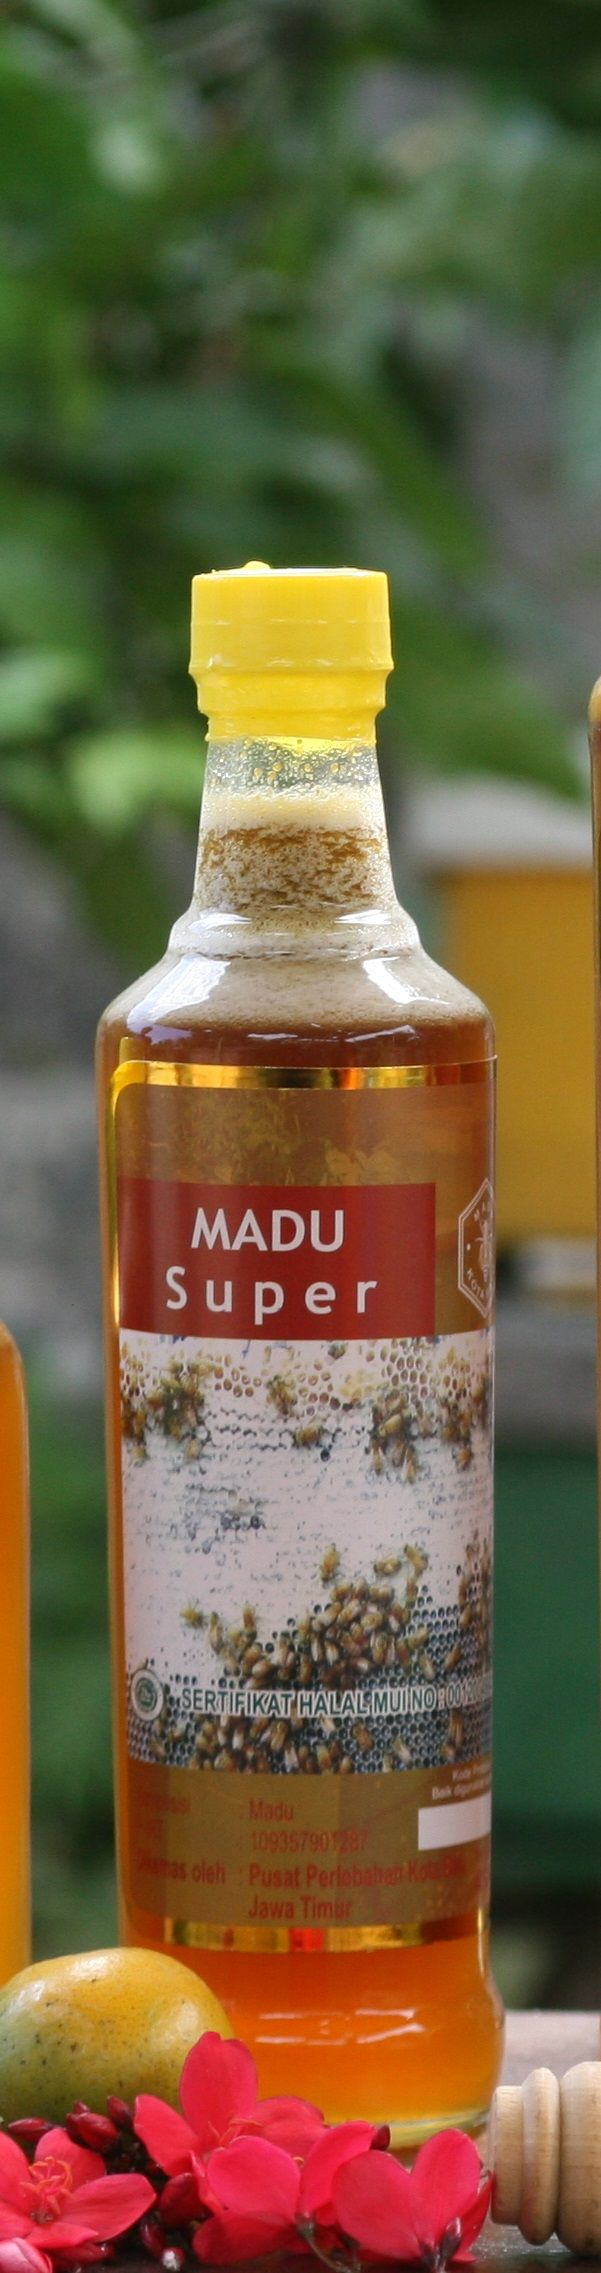 madu asi, madu asli untuk wajah, madu asli untuk anak, honey the kid original, honey the girl who can see smell original, honey on the face is it good original, honey on the skin original, madu asli hpai, madu asli Apotik, madu asli dicampur telur, madu asli encer, efek madu asli, madu asli freezer, madu flora asli, madu asli female daily, madu asli gas, madu asli grosir, madu asli hutan liar,